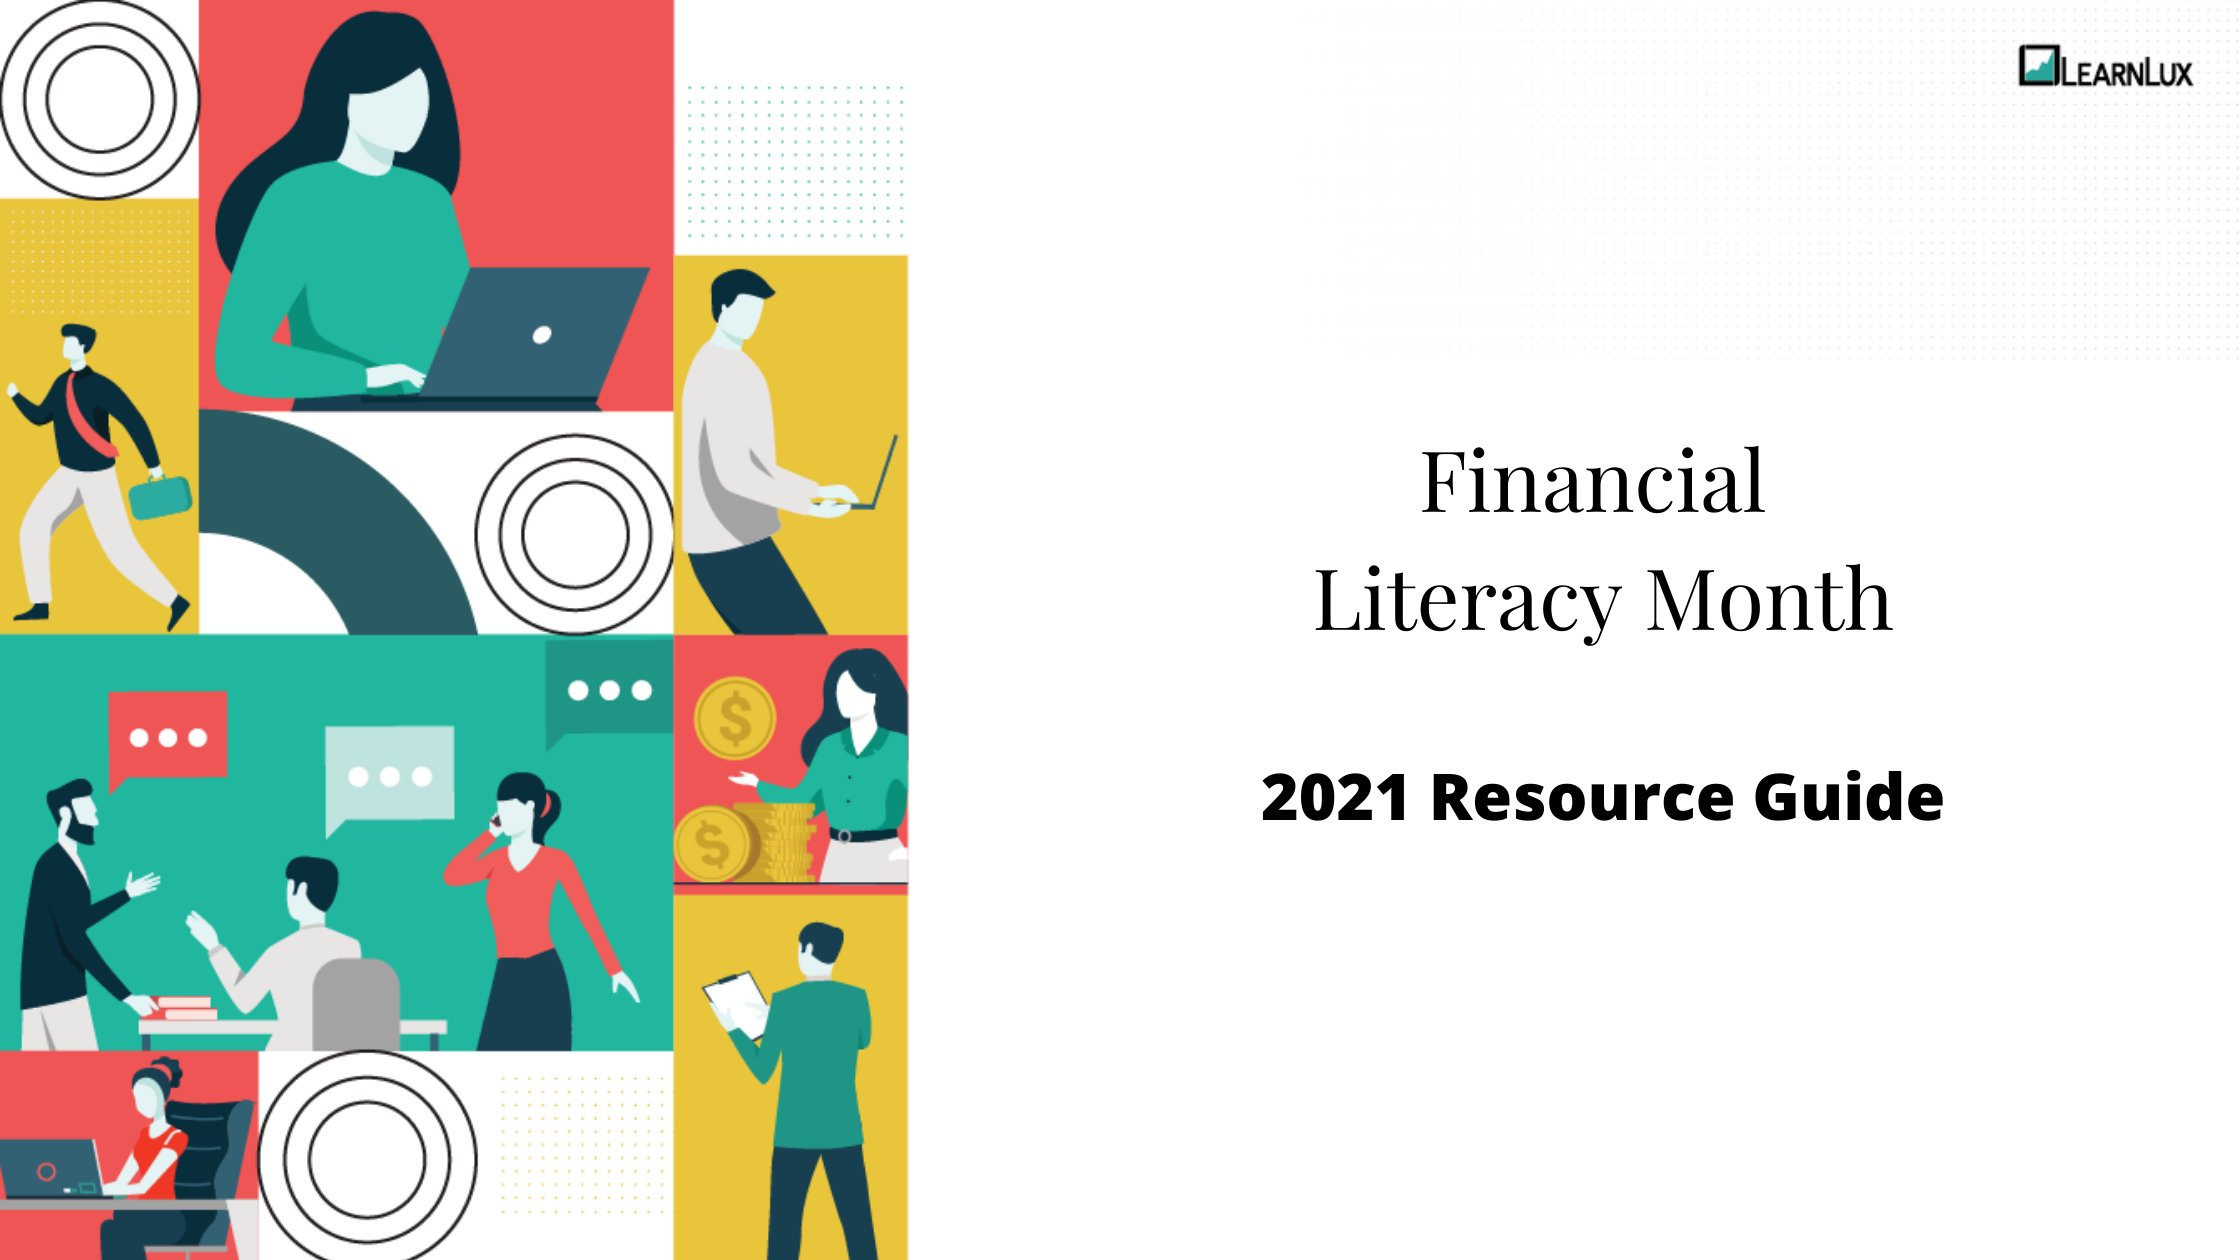 Financial Literacy Month 2021 Resources for employers